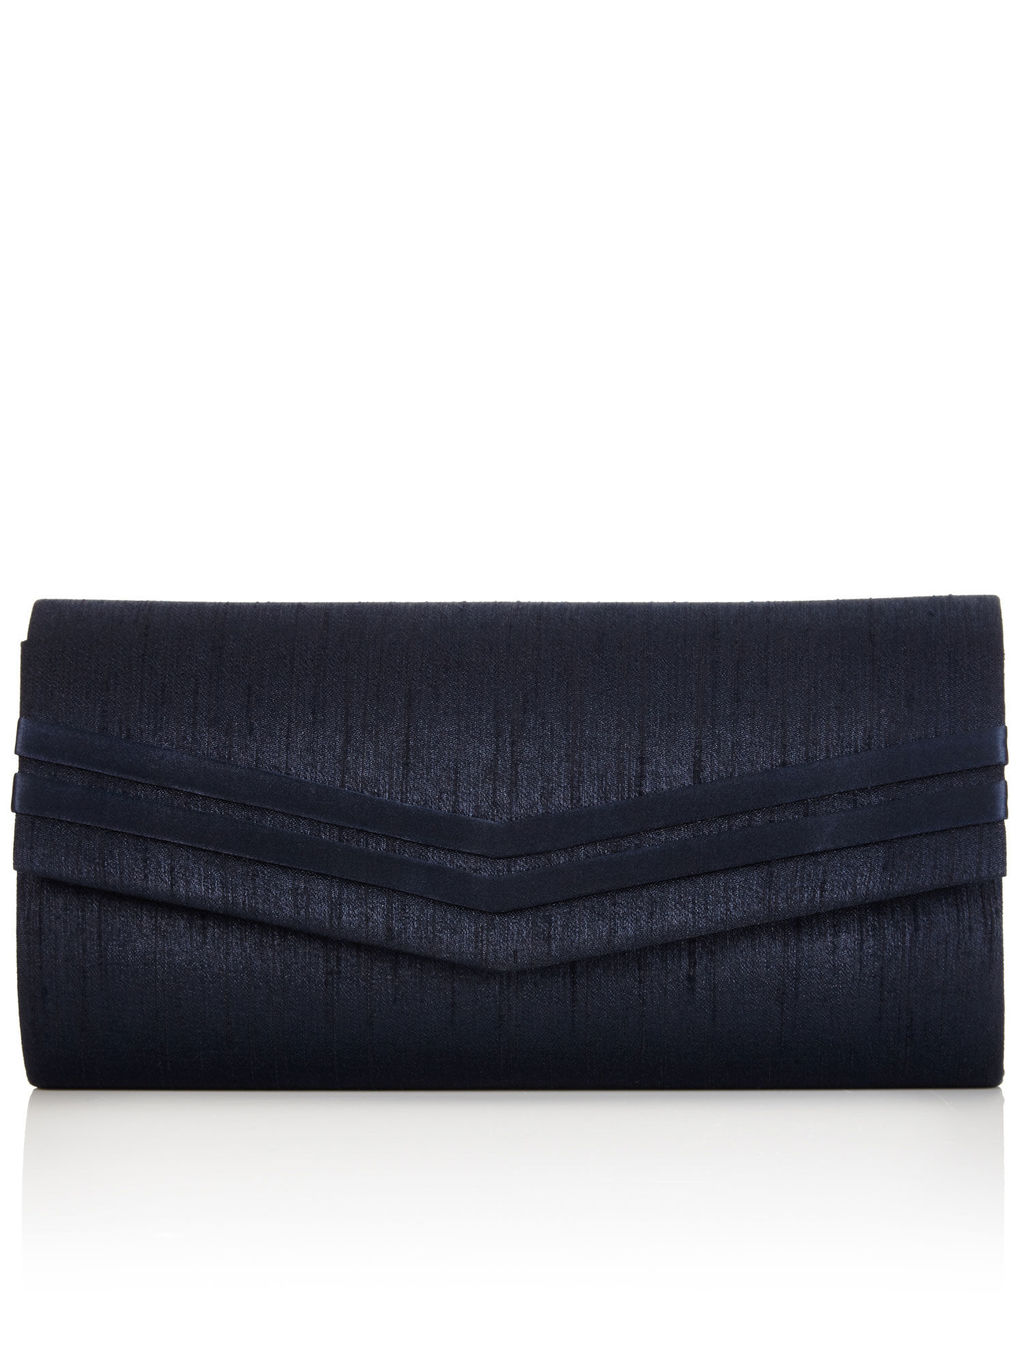 Stripe Clutch Bag - predominant colour: navy; occasions: evening, occasion; type of pattern: standard; style: clutch; length: hand carry; size: standard; material: fabric; pattern: plain; finish: plain; season: a/w 2015